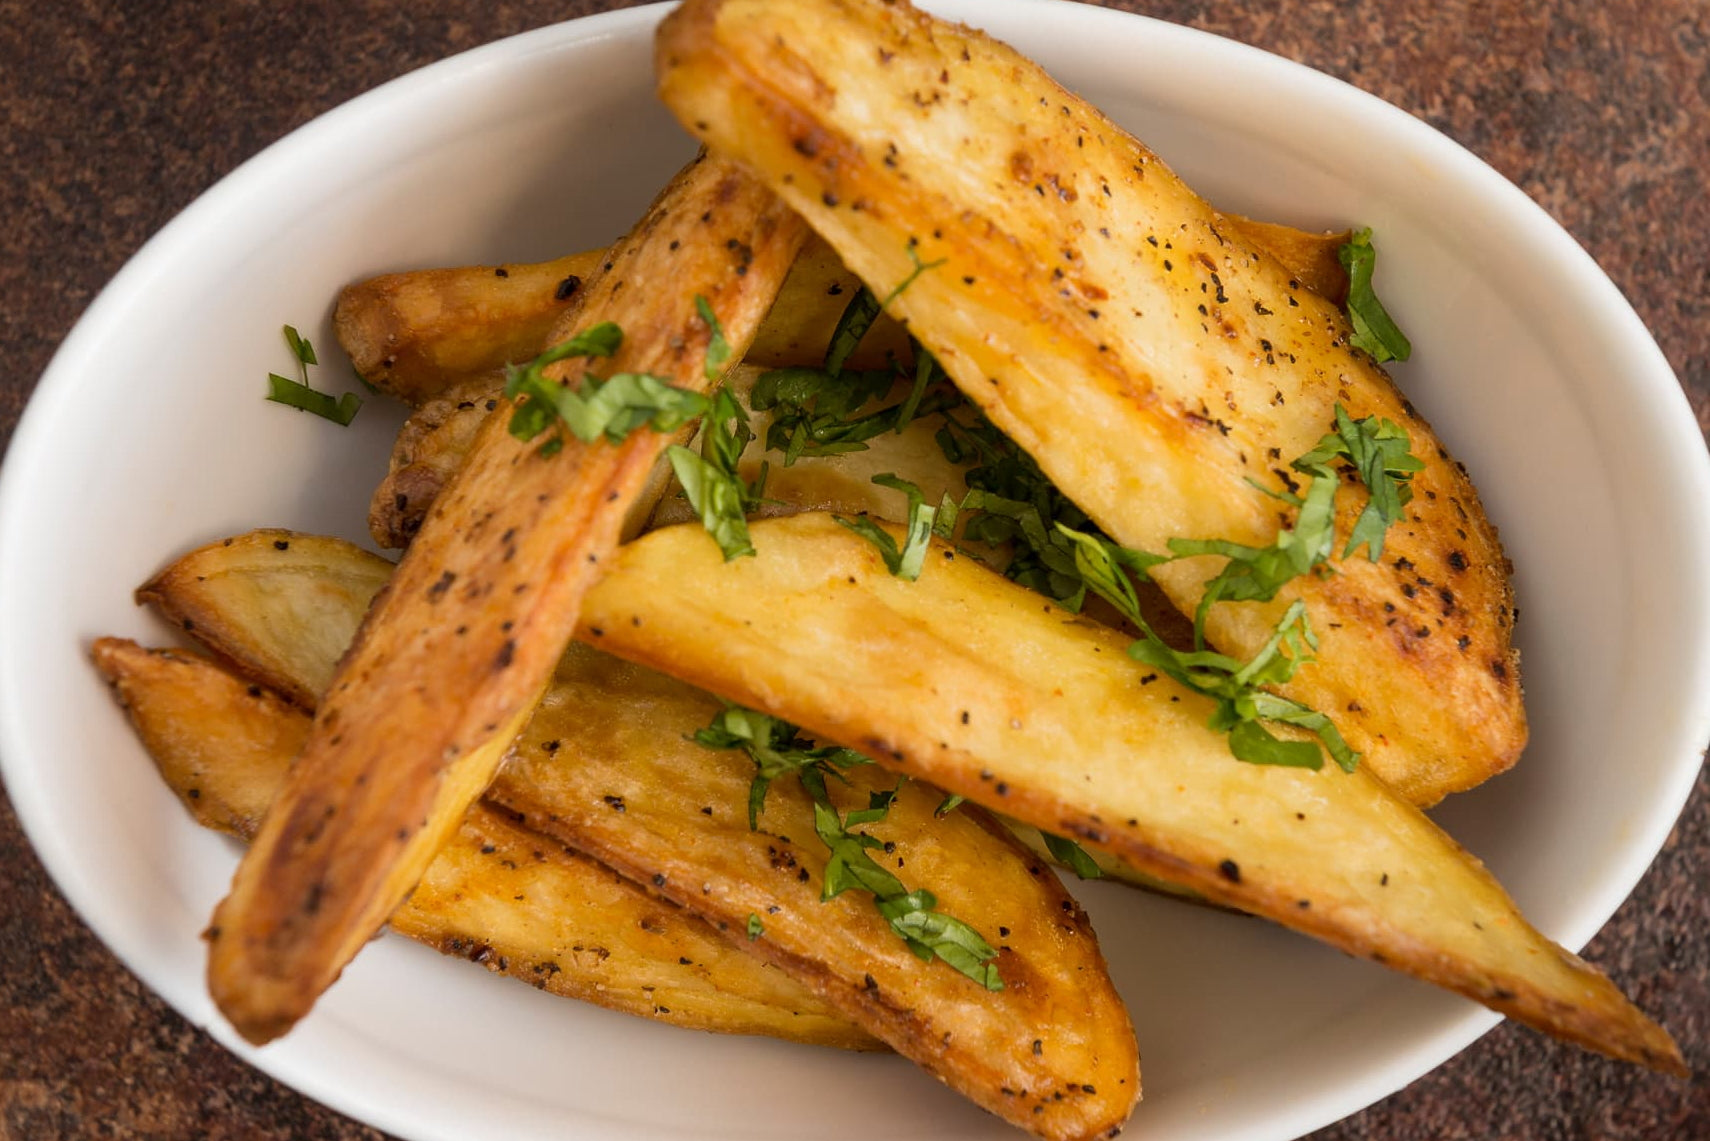 Potato Wedges To Share For 2 People (VG)